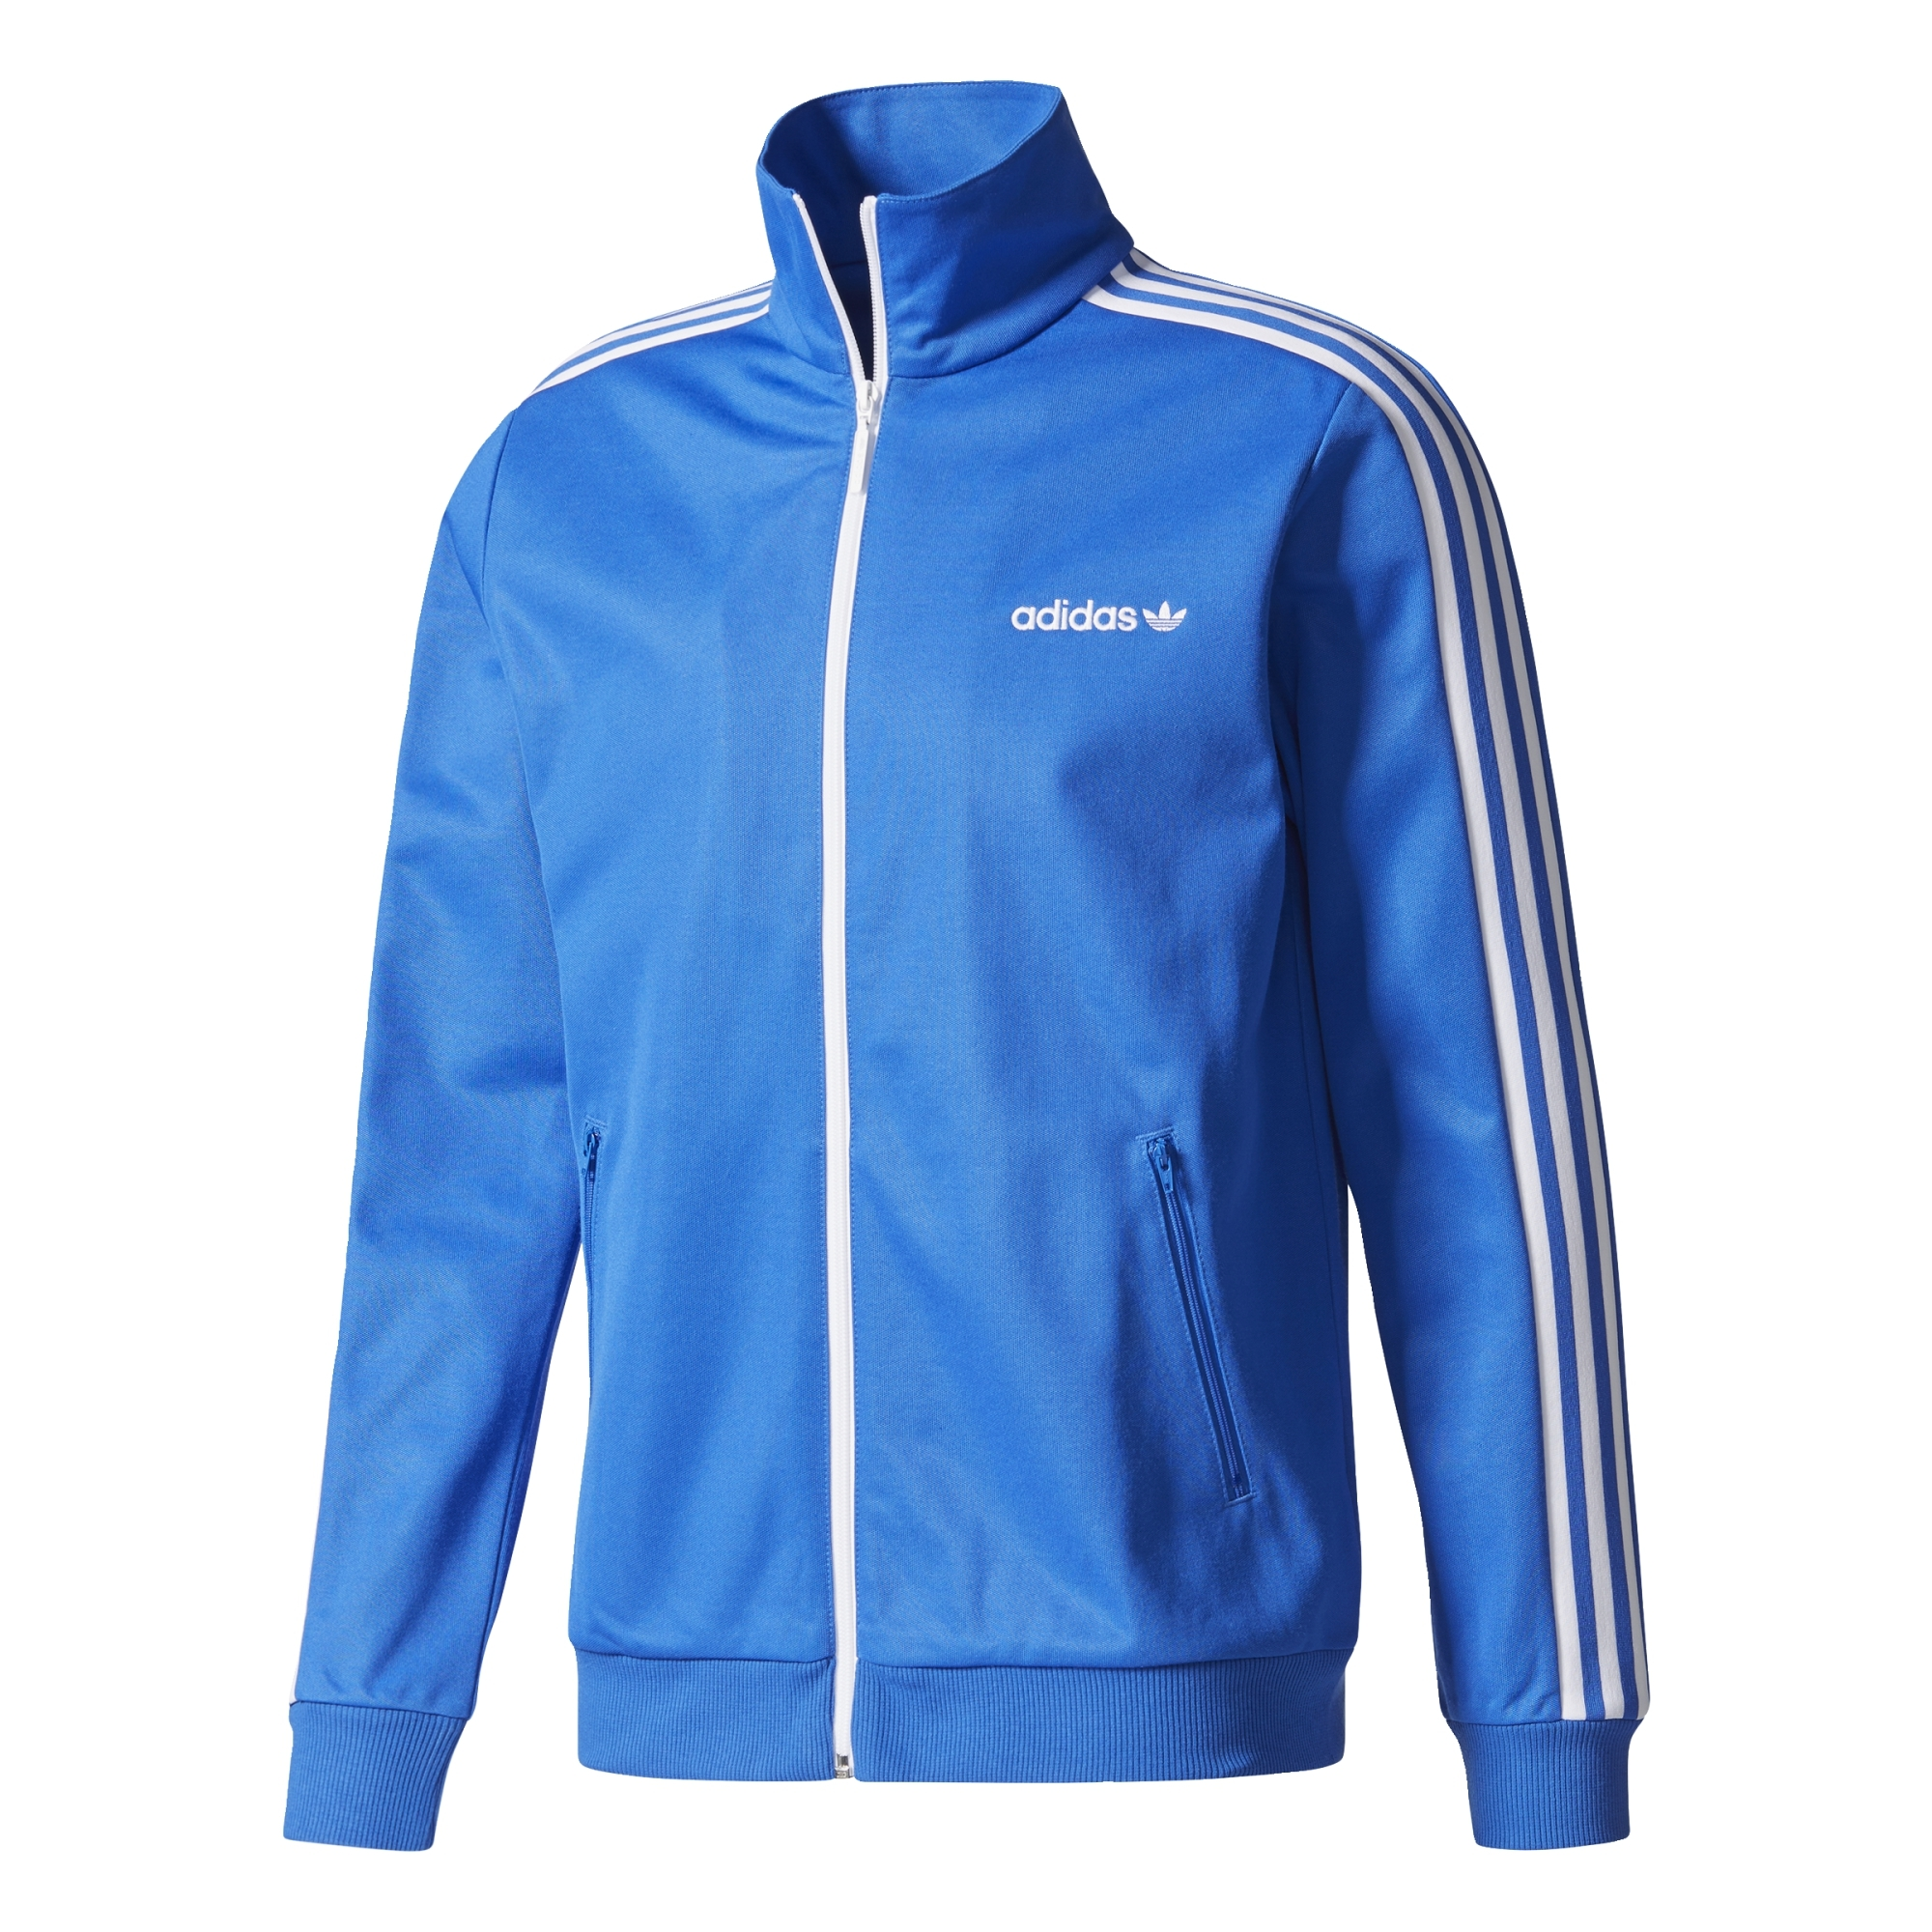 0620c709c199 Adidas Originals Beckenbauer Track Top (blue white)